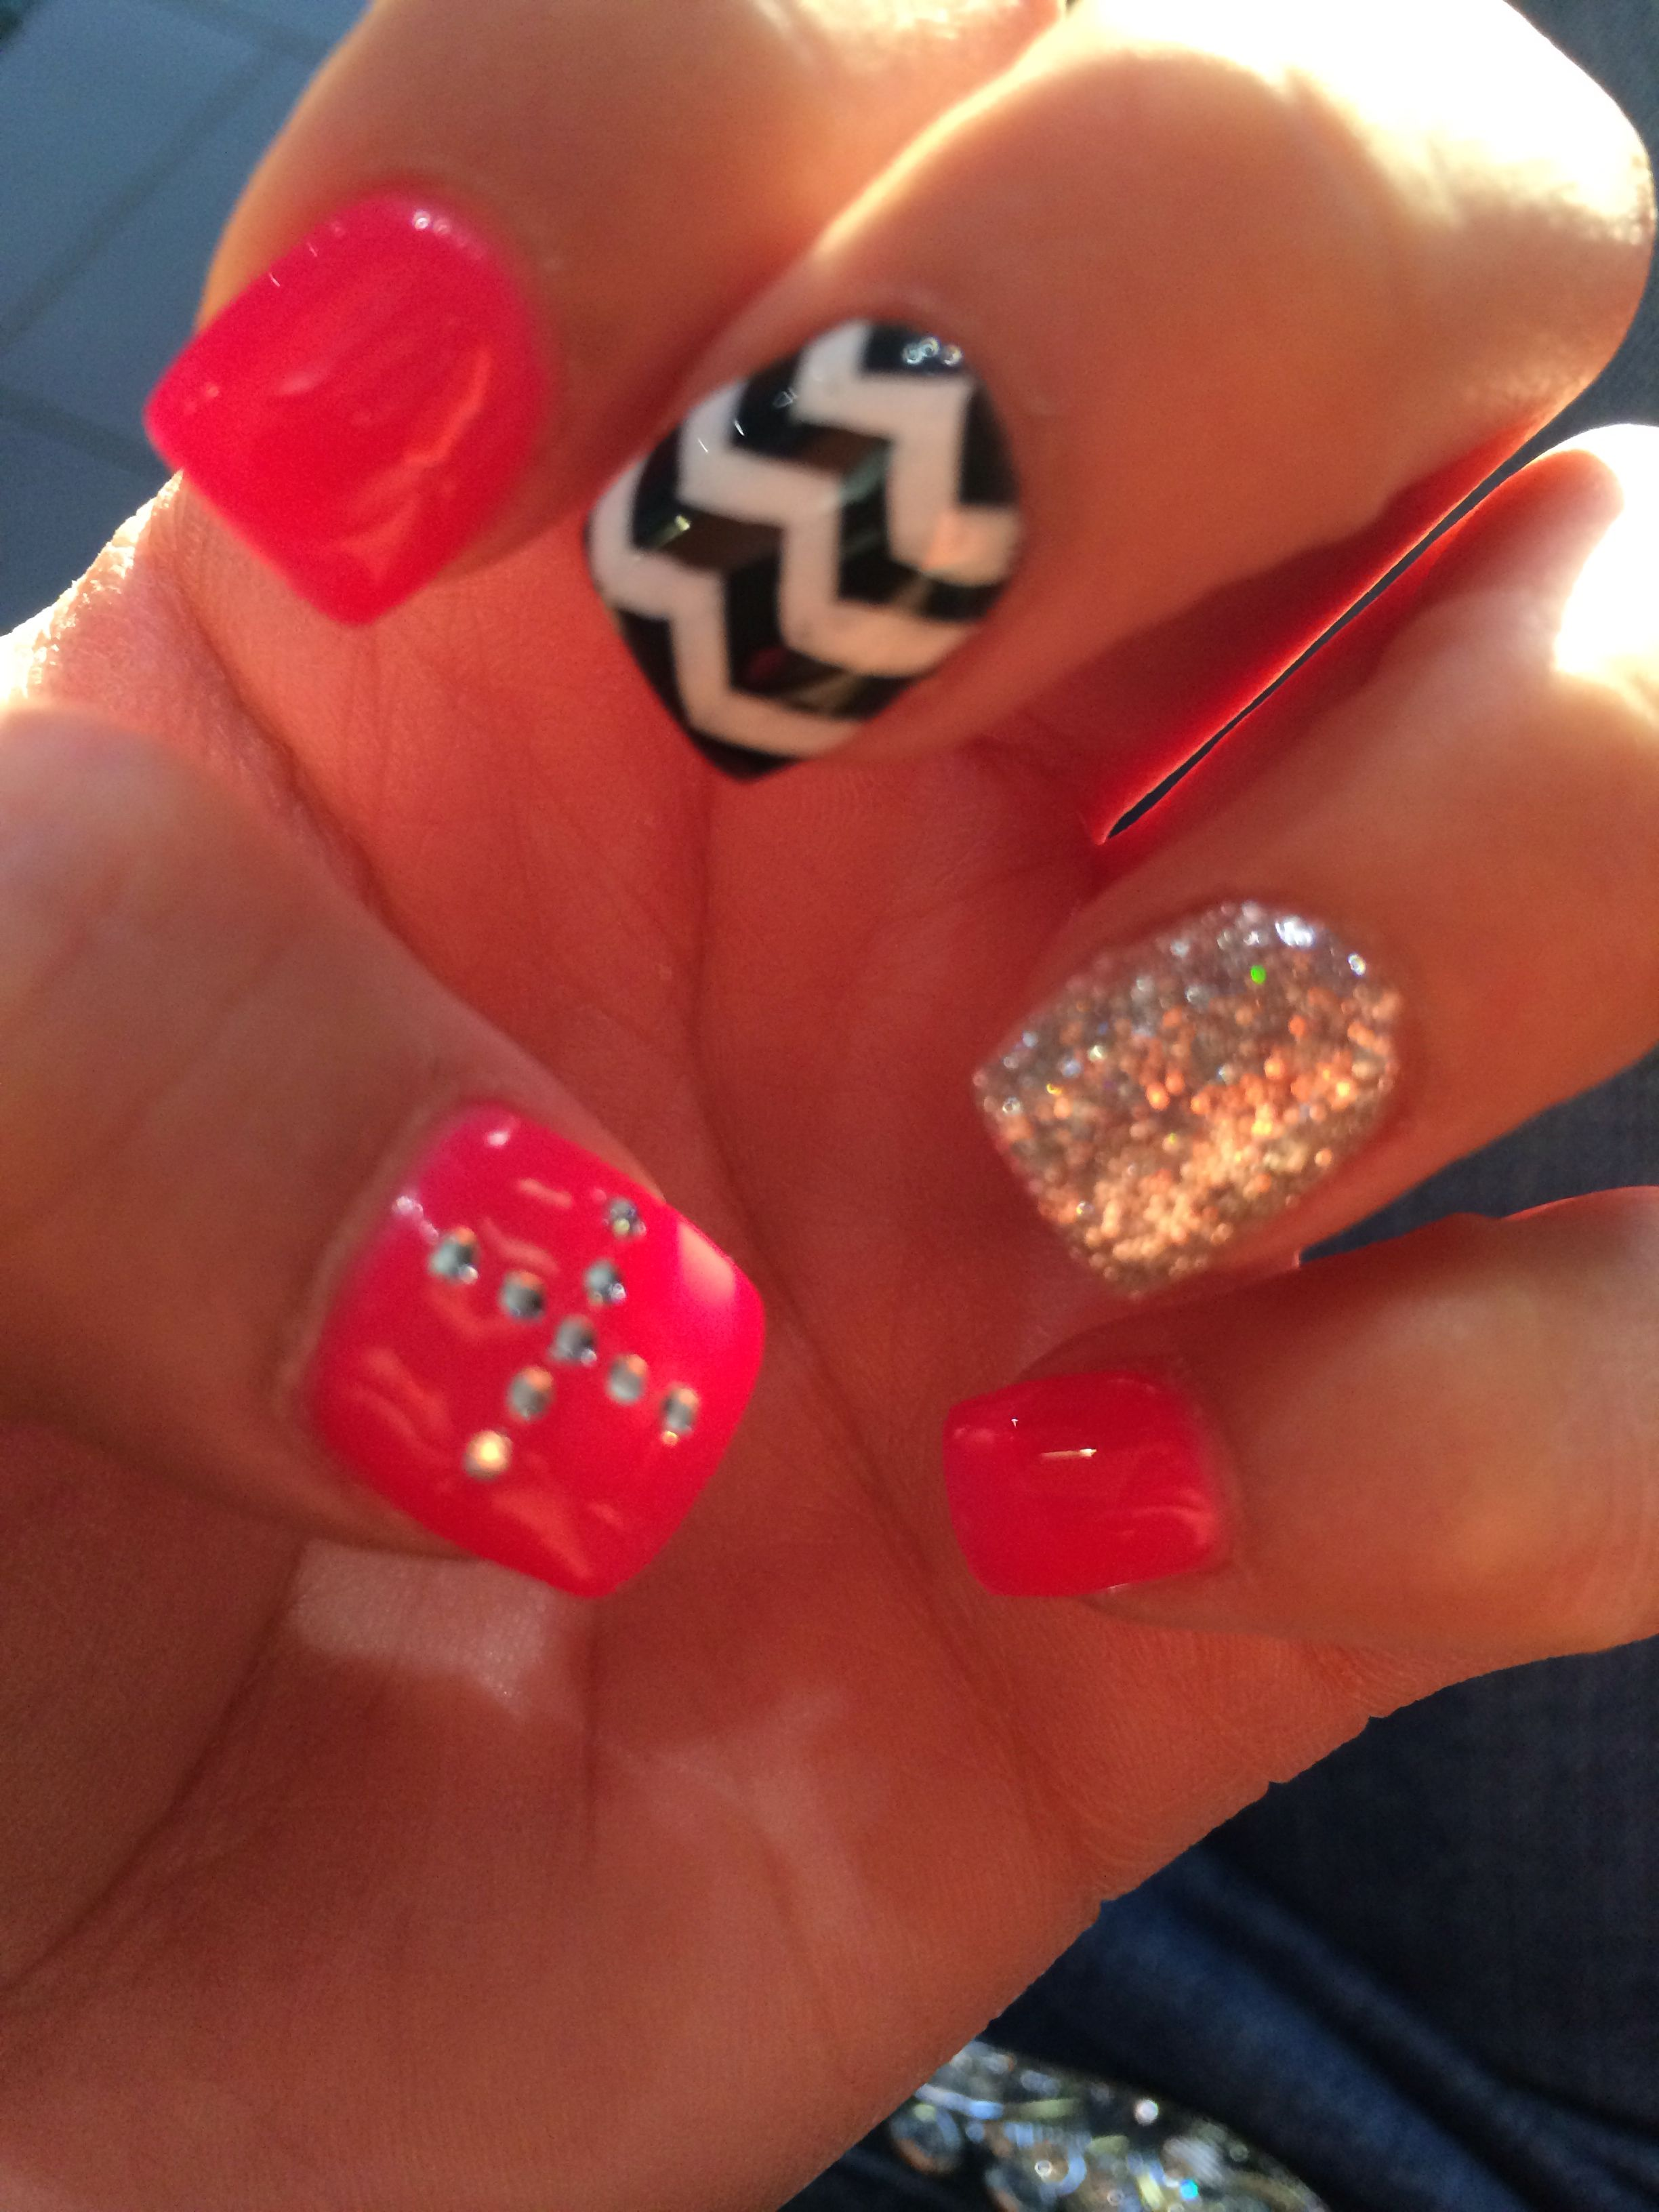 In Love With My New Nails Cross Chevron Glitter Pink Nails